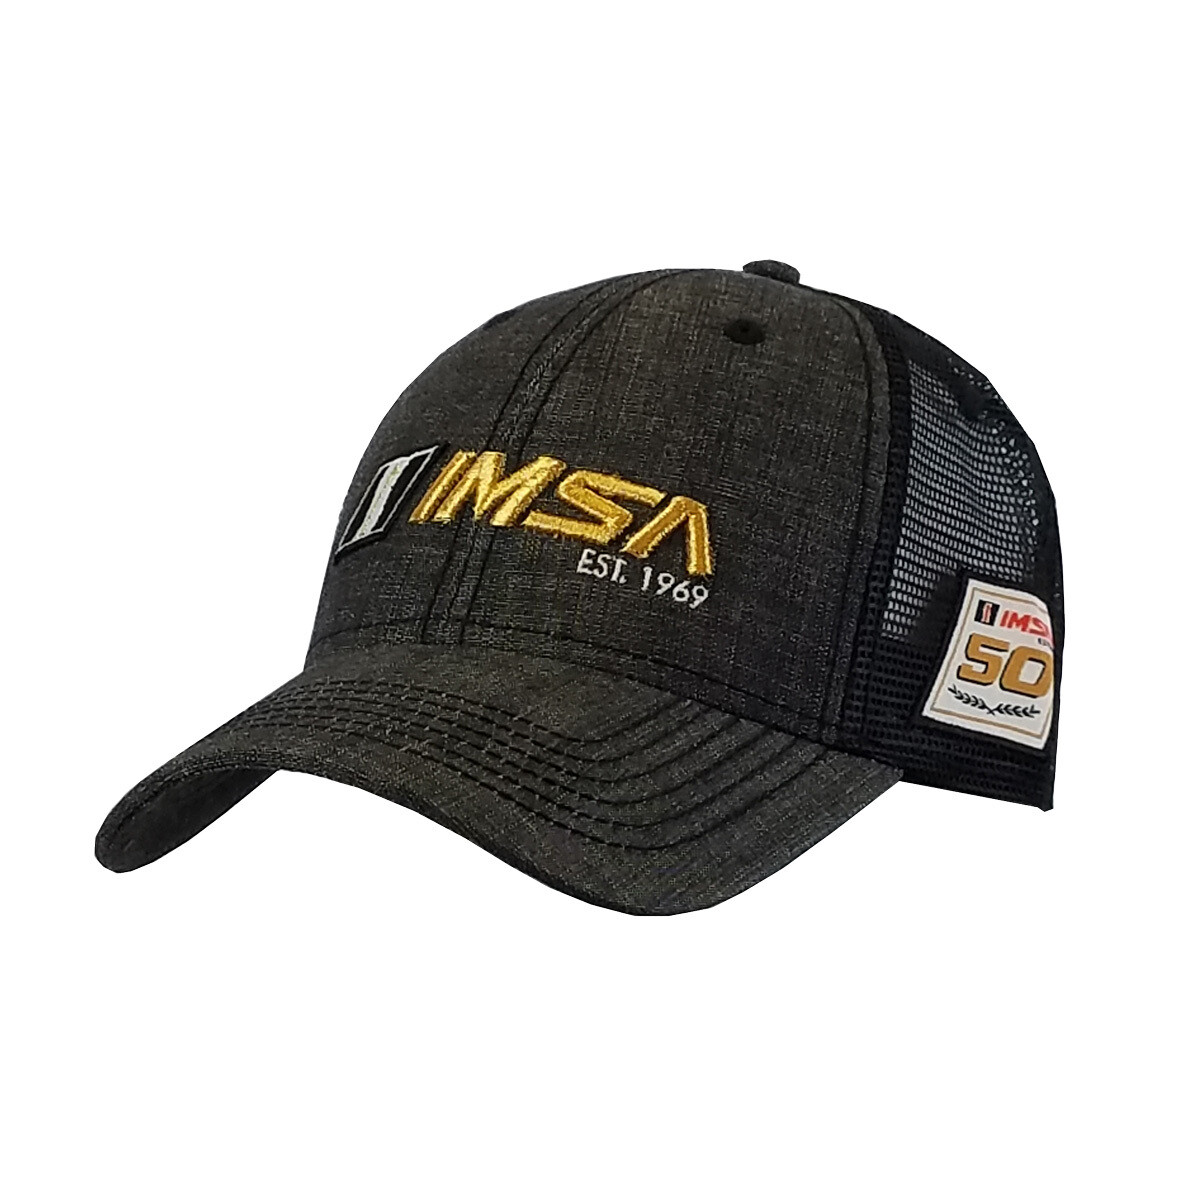 IMSA 1969 Trucker Mesh Hat Blk Chambray